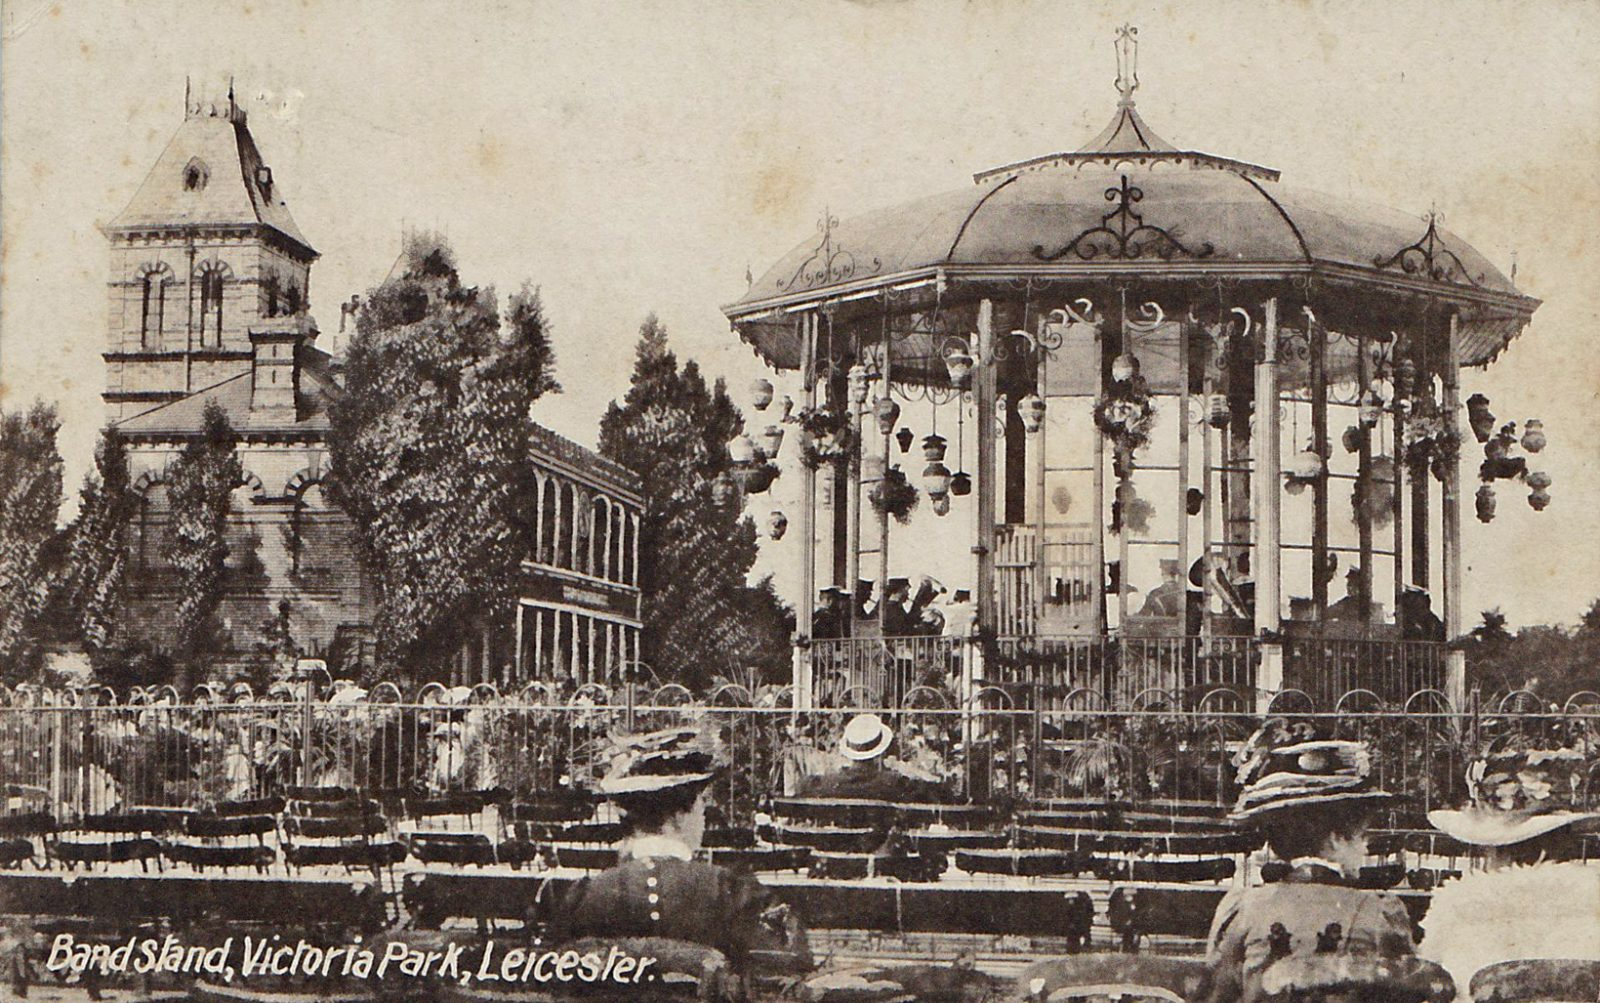 Victoria Park, Leicester. 1901-1920: Bandstand and pavilion in Victoria Park. Franked 1905 (File:1514)